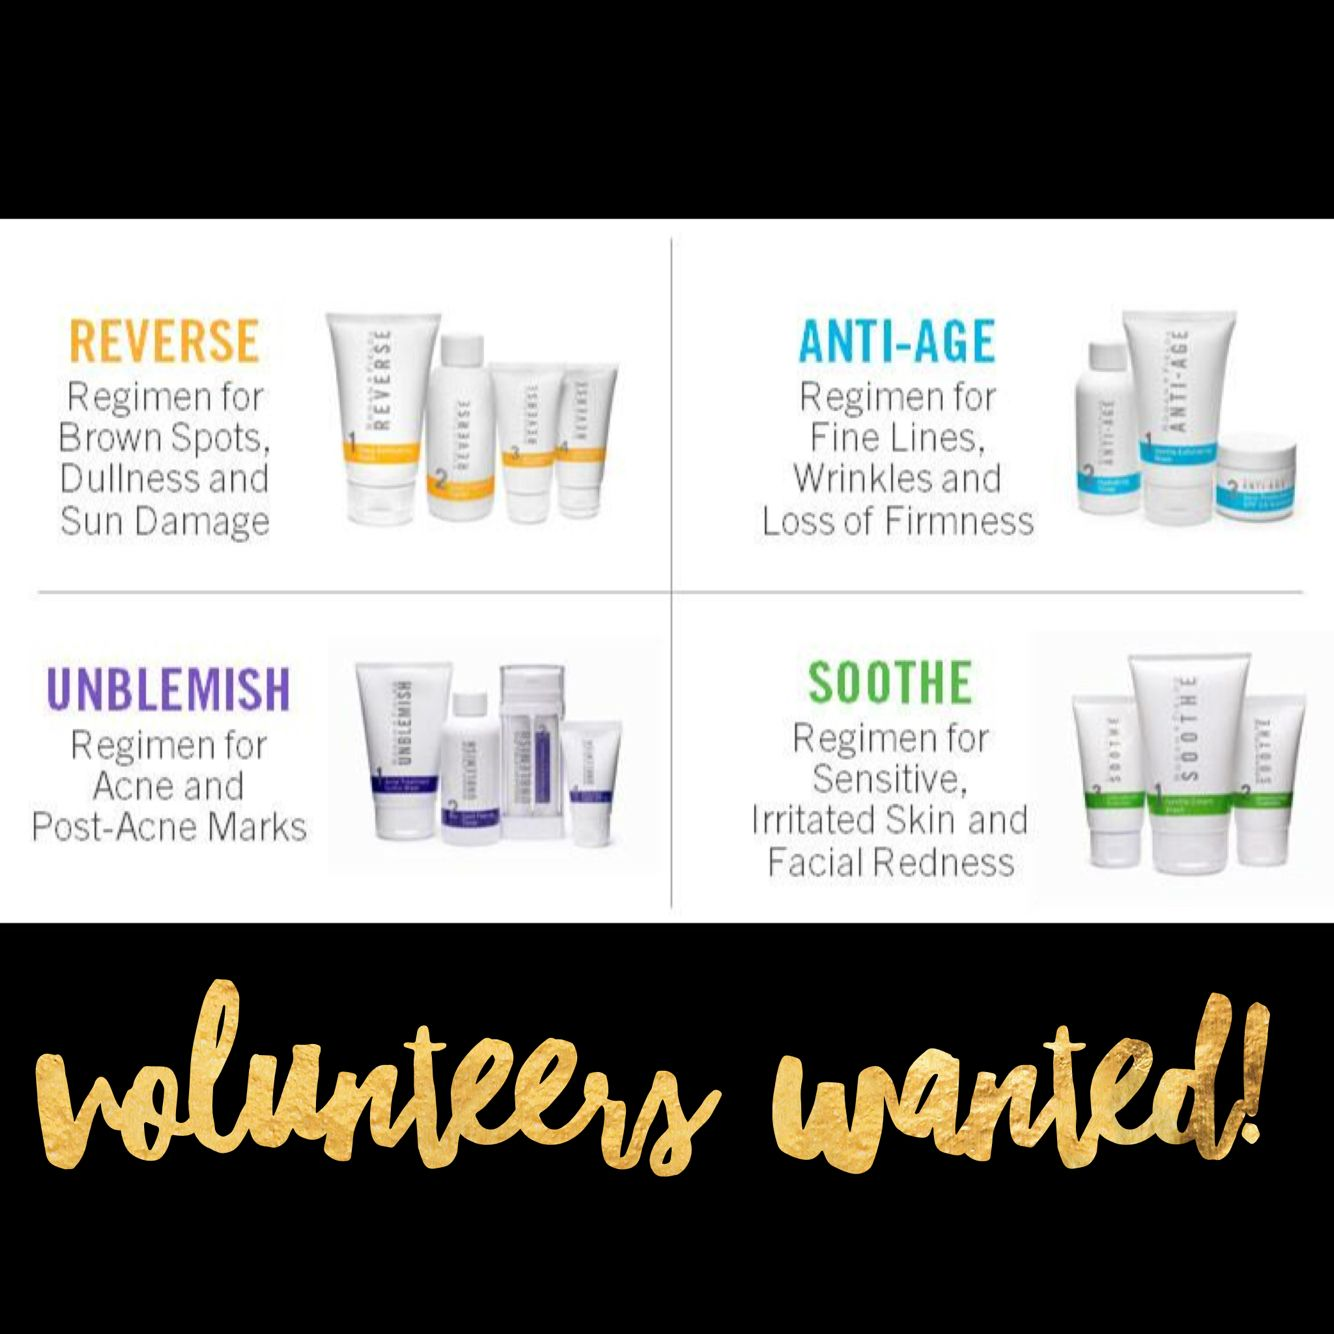 Volunteers Wanted:  One volunteer for our Redefine Regimen One volunteer for our Reverse Regimen One volunteer for our Soothe Regimen One volunteer for our Unblemish Regimen  At the end of the 60 day risk free trial, I'll personally reimburse you the difference between retail and my cost!   This is a NO RISK, all REWARD opportunity!  If you don't love it, you can return the empty bottles for a full refund, but just to let you in on a little secret. The return percentage is LESS THAN 1%!